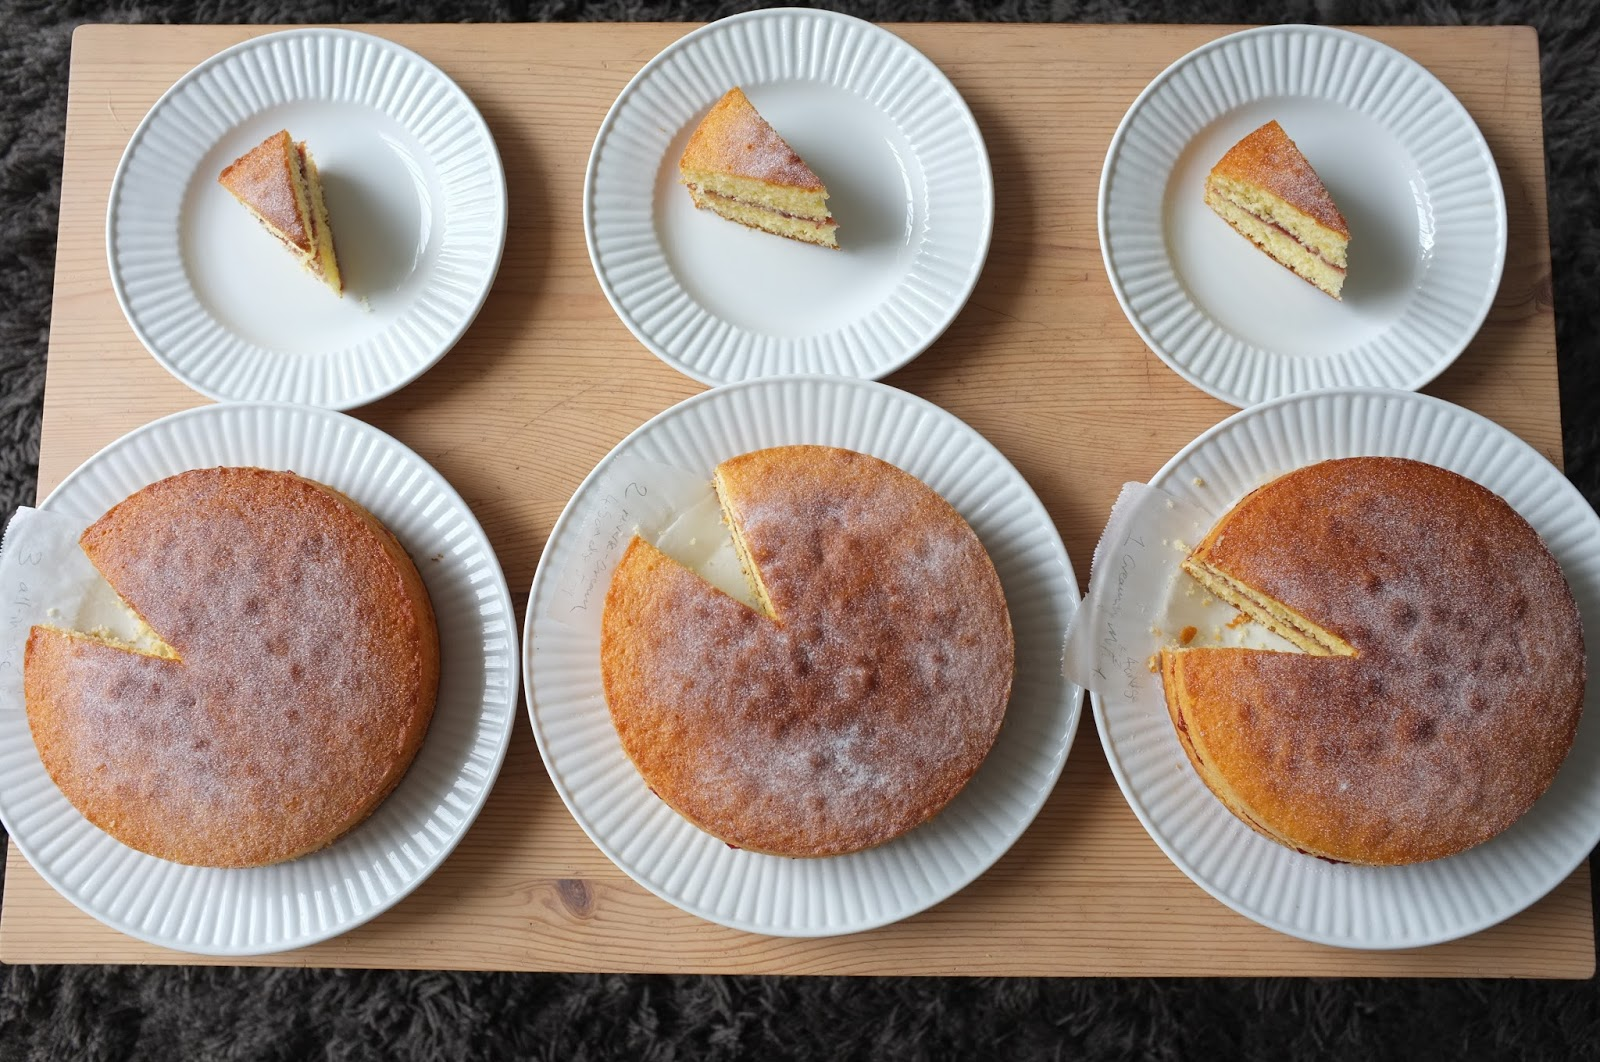 A Little Shop In Tokyo Classic Victoria Sponge Cake Recipe And Comparison Of 3 Mixing Methods